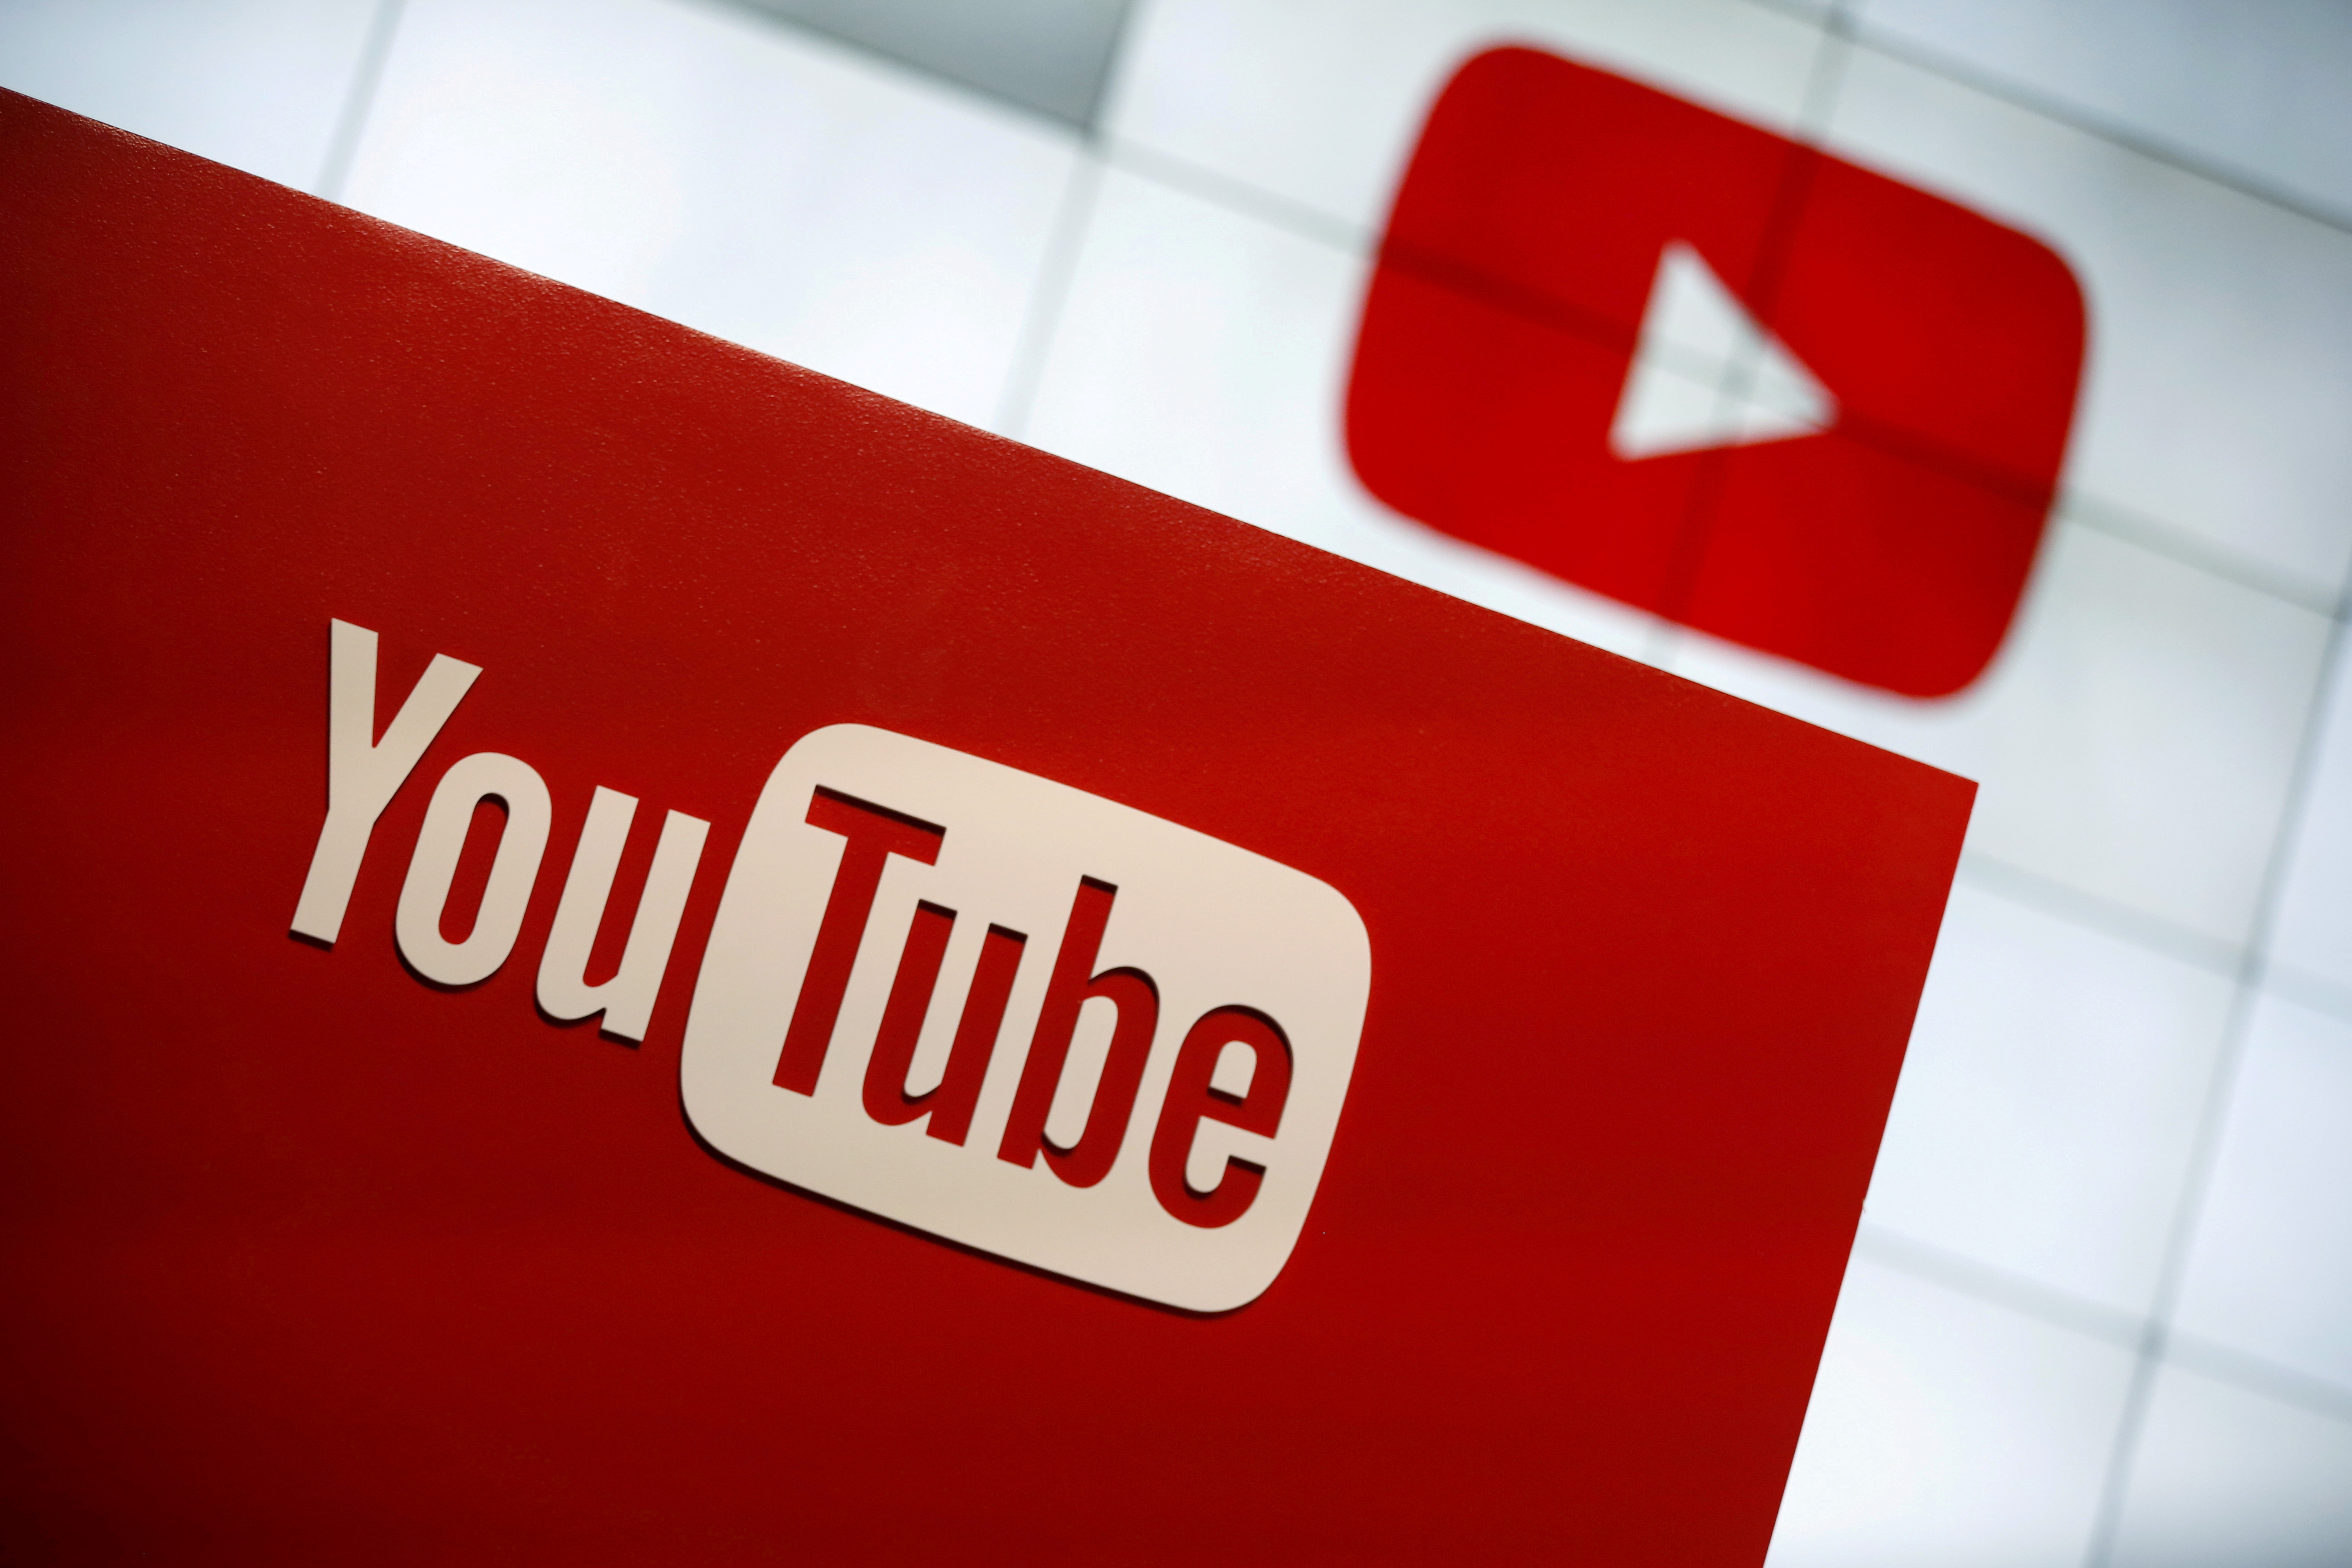 YouTube logo at the YouTube Space LA in Playa Del Rey, Los Angeles, California, United States October 21, 2015. REUTERS/Lucy Nicholson/File Photo